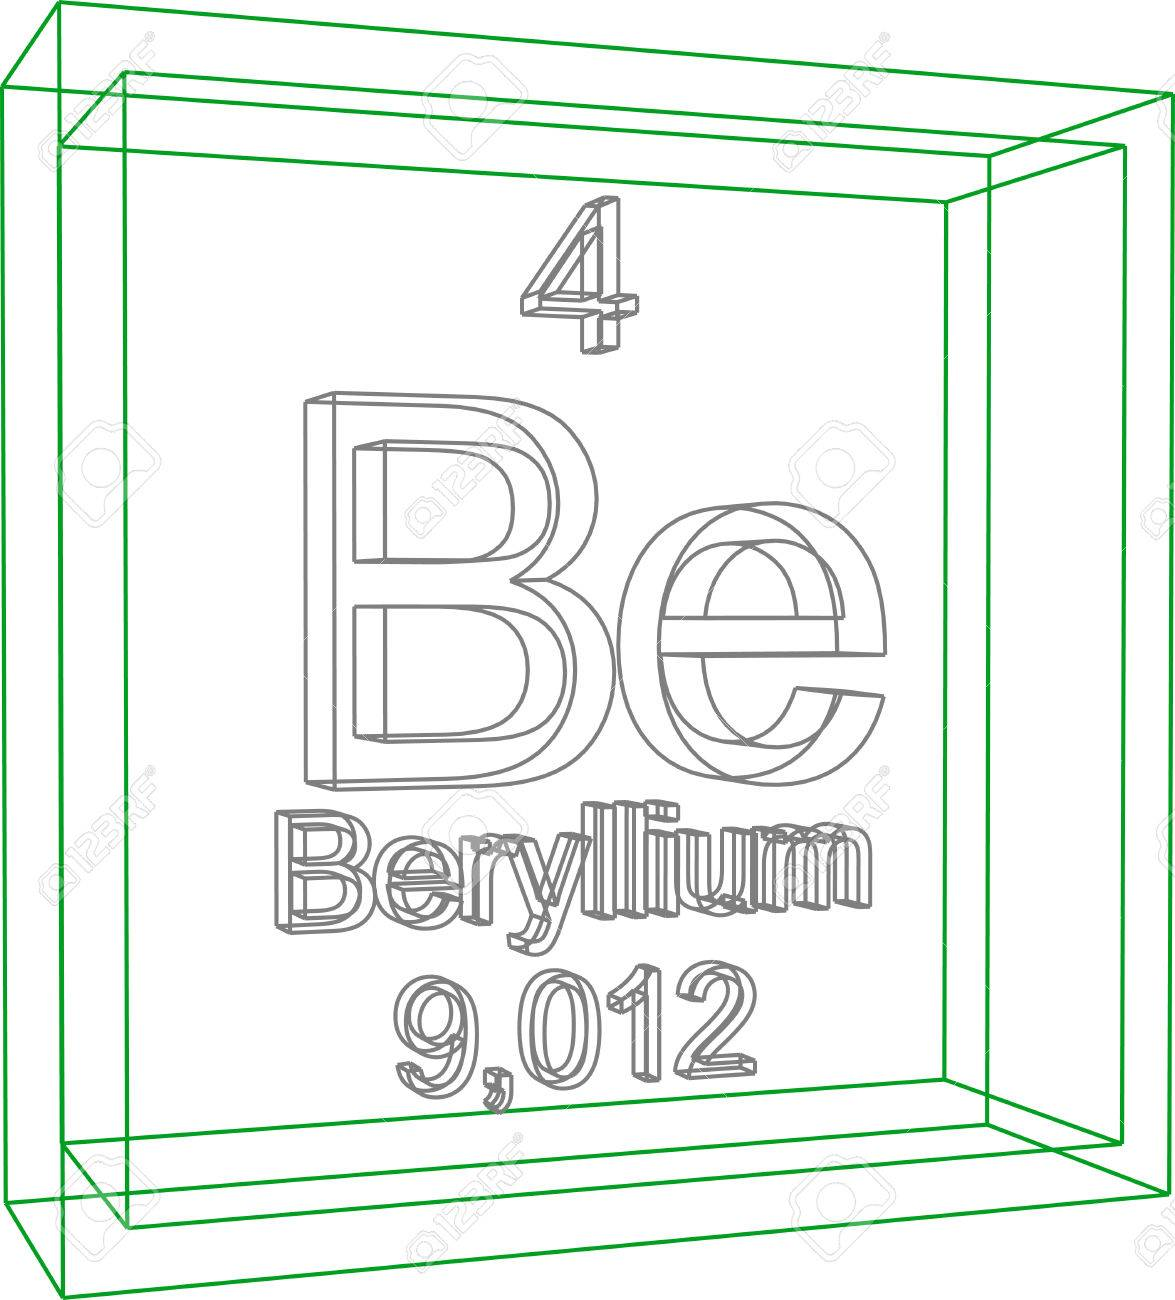 Periodic table of elements beryllium royalty free cliparts periodic table of elements beryllium stock vector 57970323 urtaz